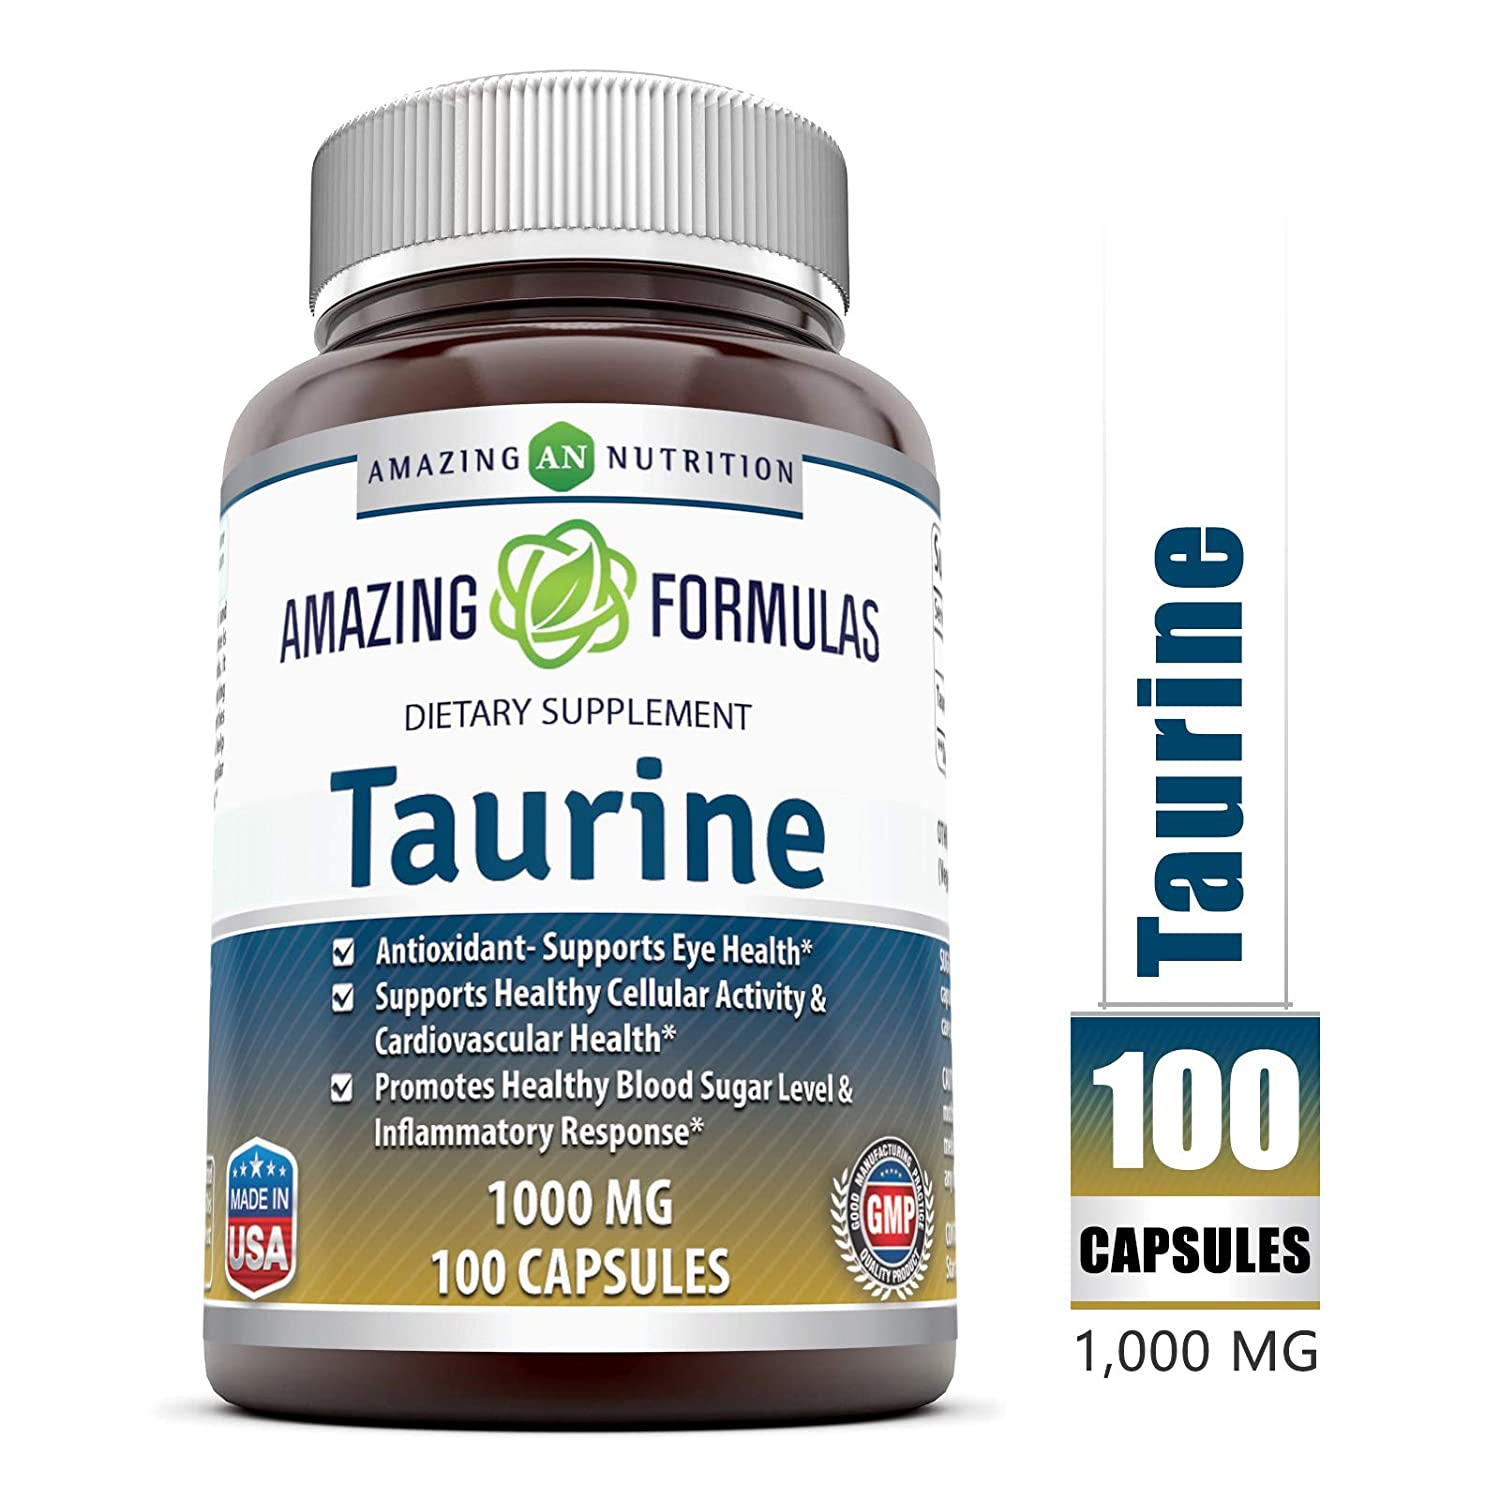 Amazing Formulas Taurine * 1000mg Pure L Taurine Amino Acid Supplement * 100 Capsules (Non-GMO)* Potent Antioxidant * Supports Eye Health, Healthy Cellular Activity & Cardio